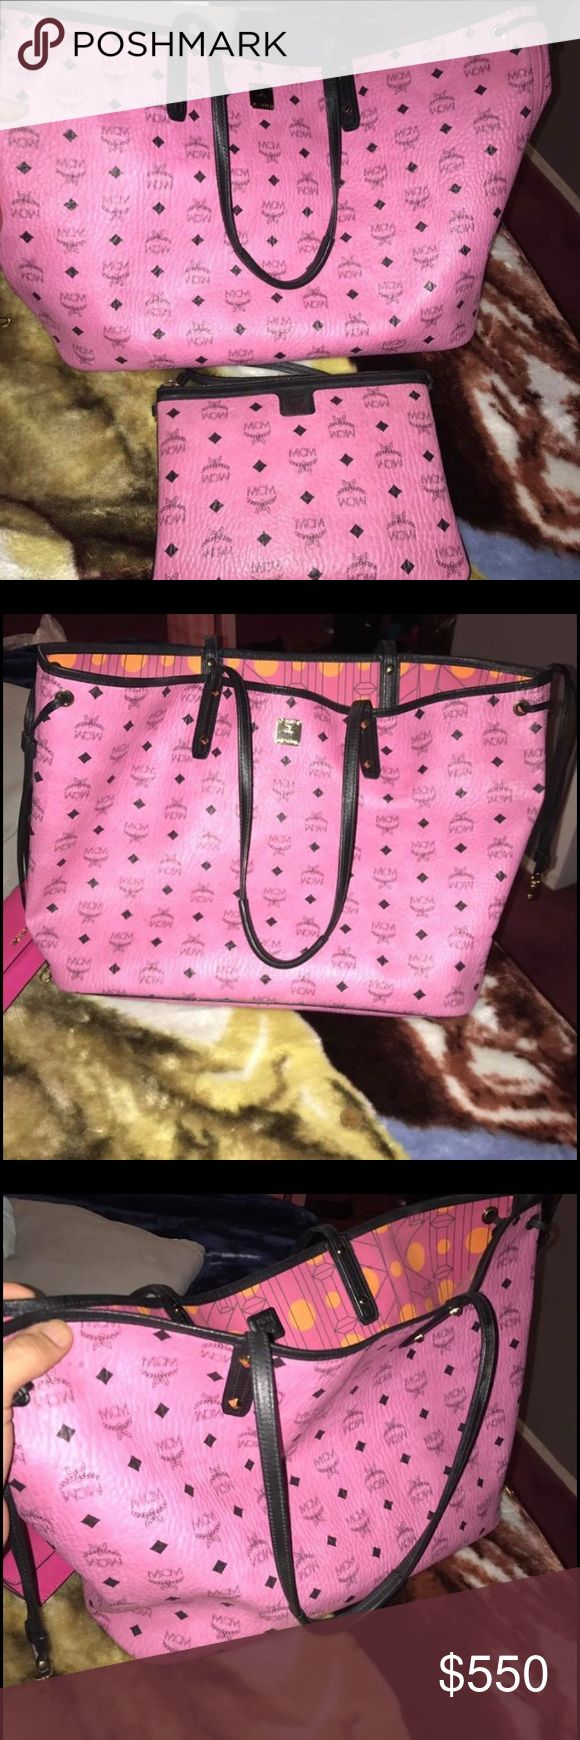 Mcm bag 100% Authentic Great condition, no stains, no marks, no rips, price is negotiable through PayPal only MCM Bags Totes